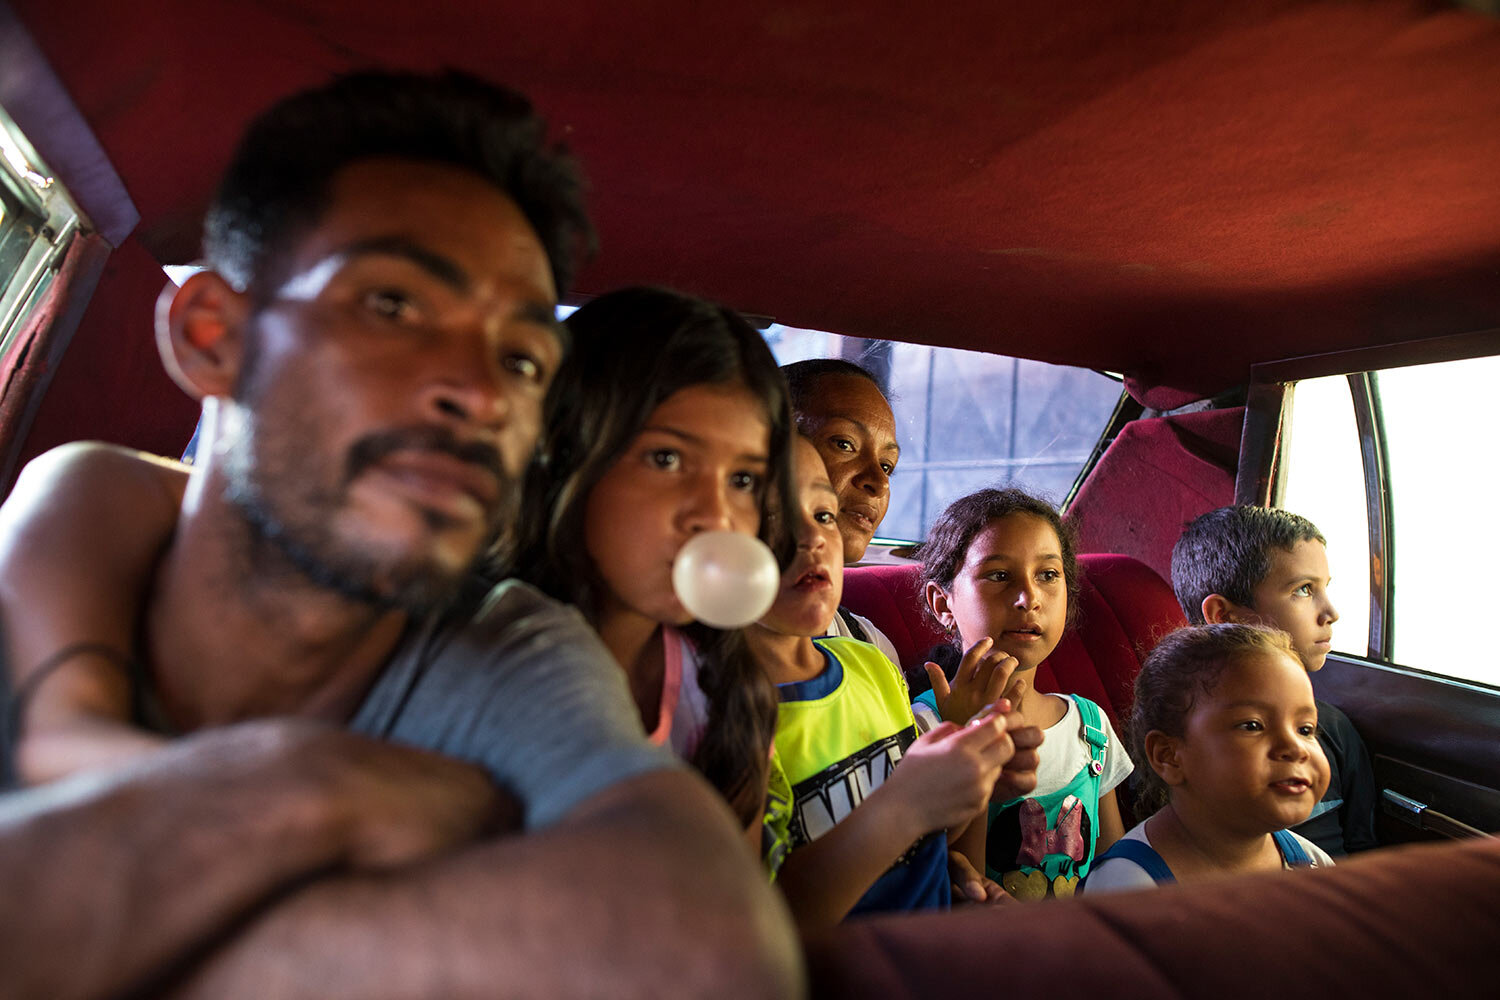 In this July 3, 2019 photo, members of the Rodriguez family travel in a 1970's car while going to buy food in Cabimas, Venezuela. (AP Photo/Rodrigo Abd)